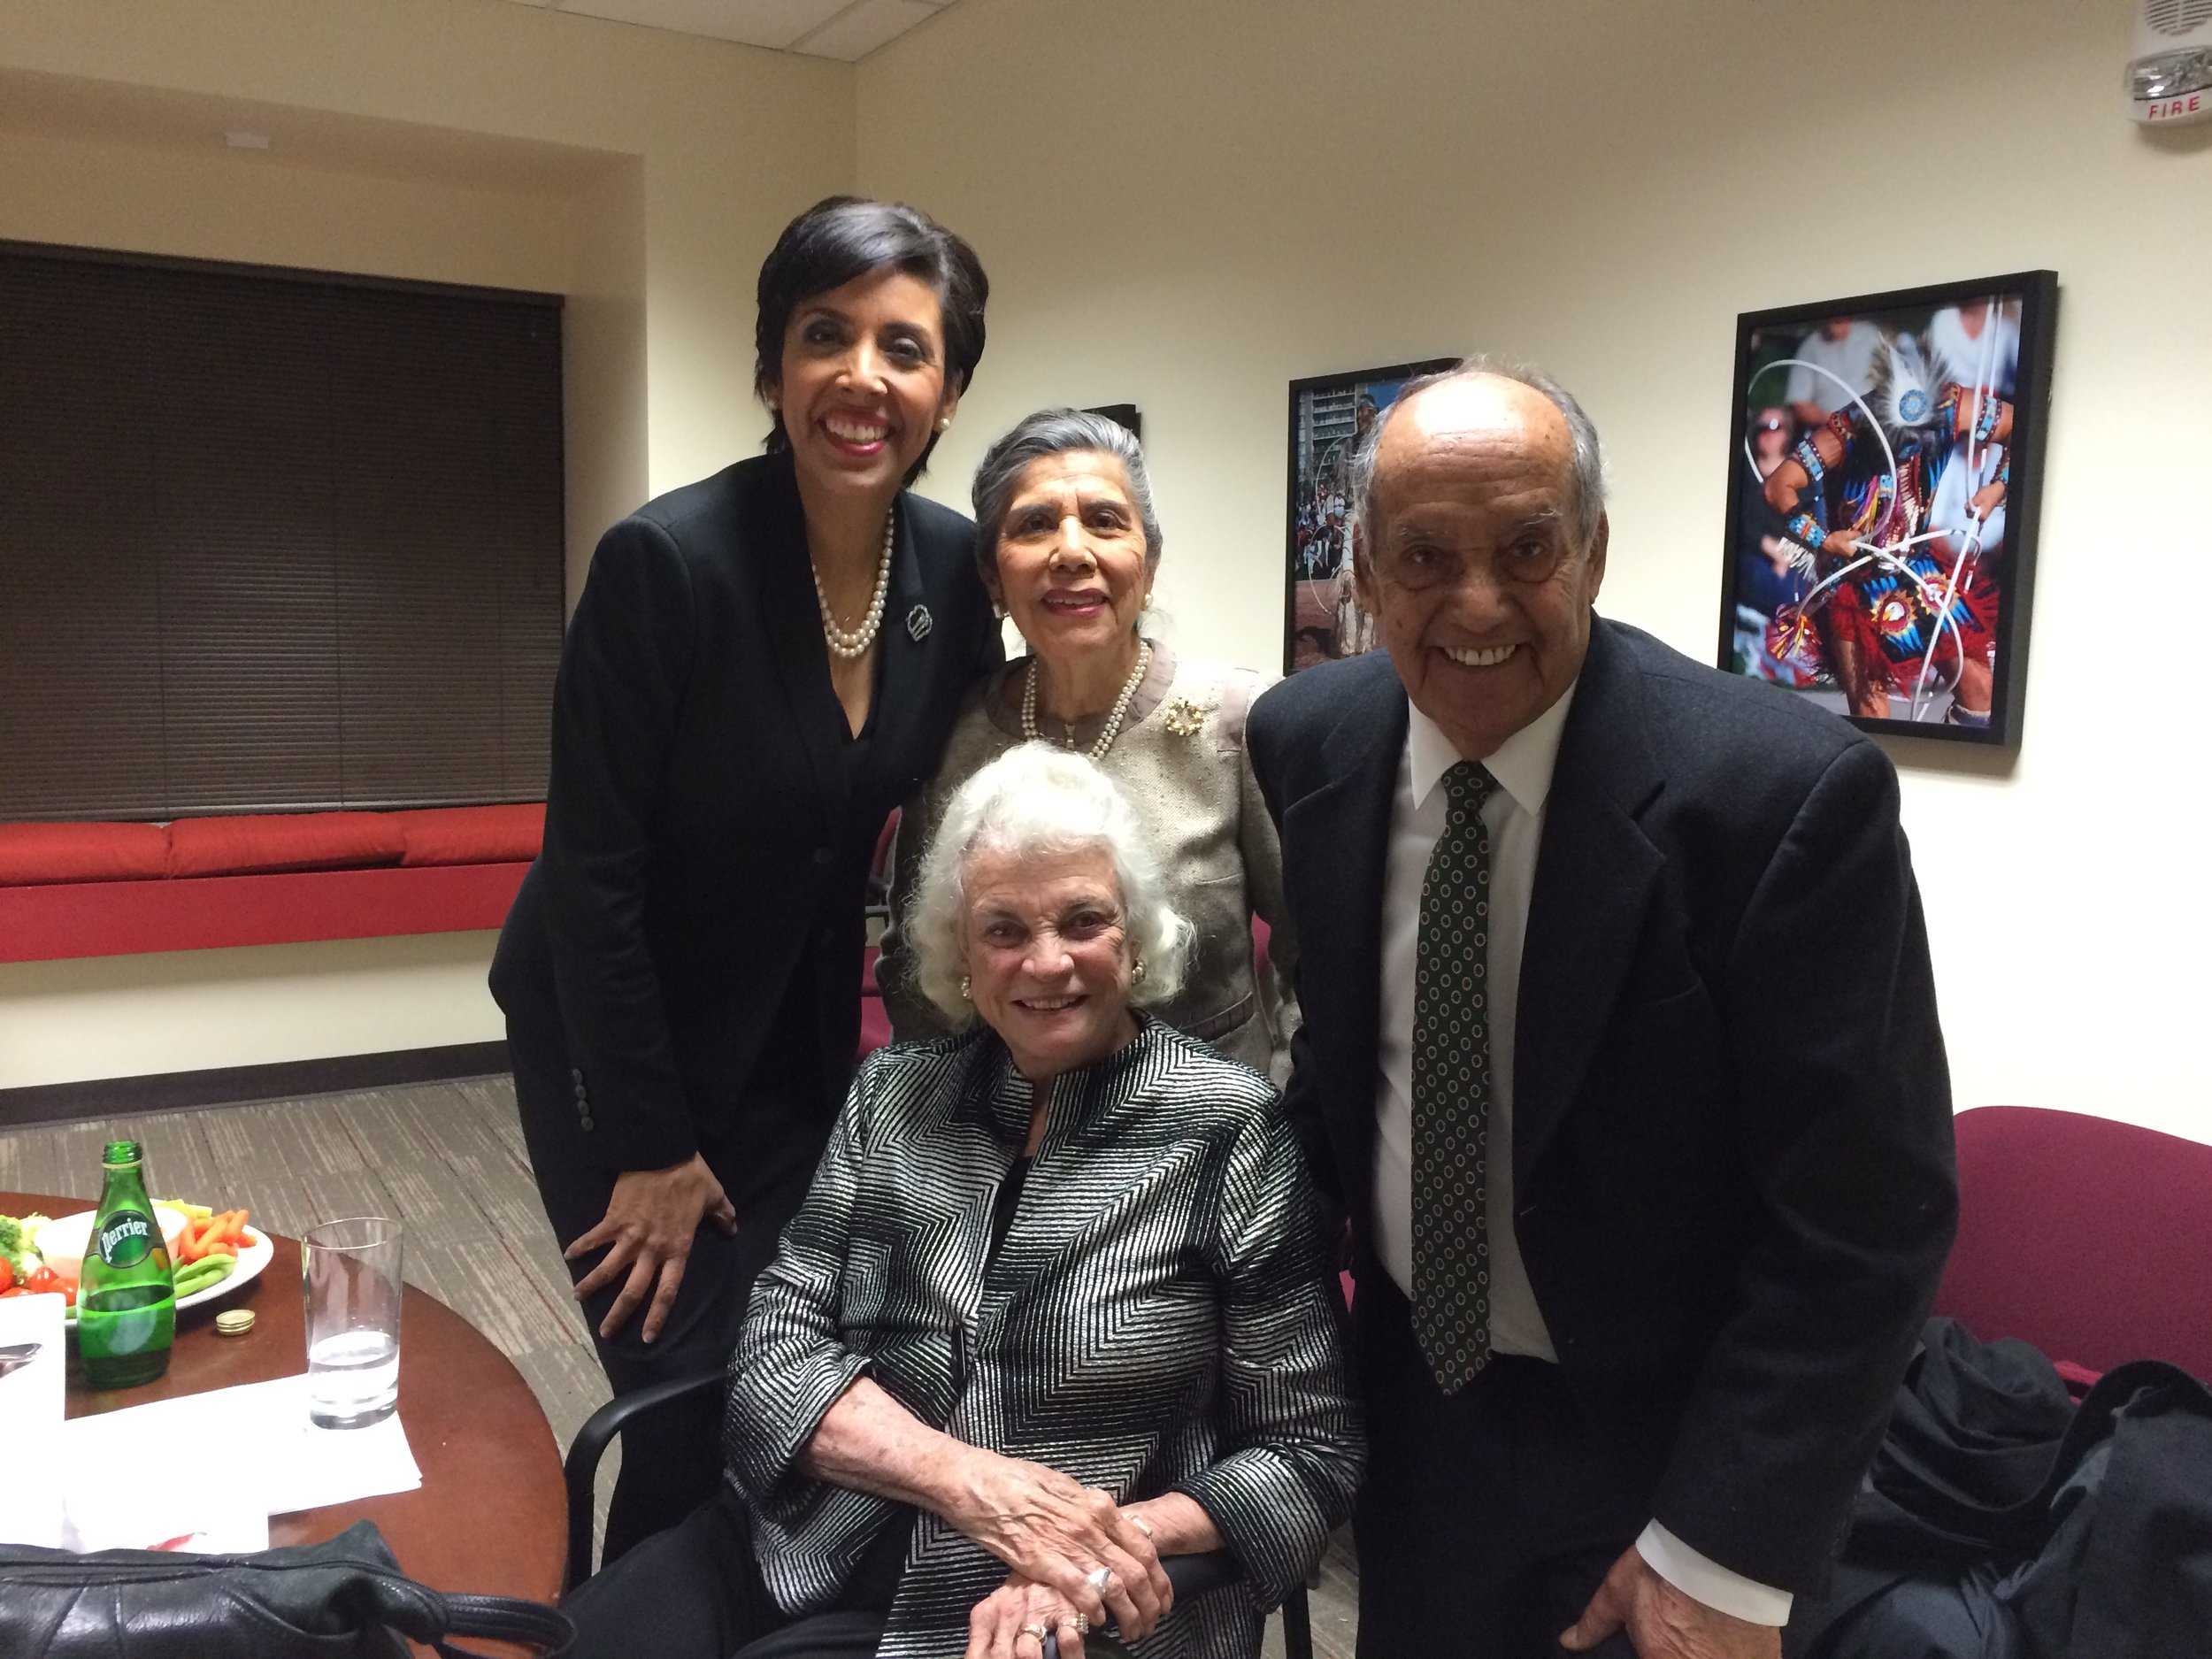 Former Associate Justice of the Supreme Court Sandra Day O'Connor with Anna Maria Chávez and family